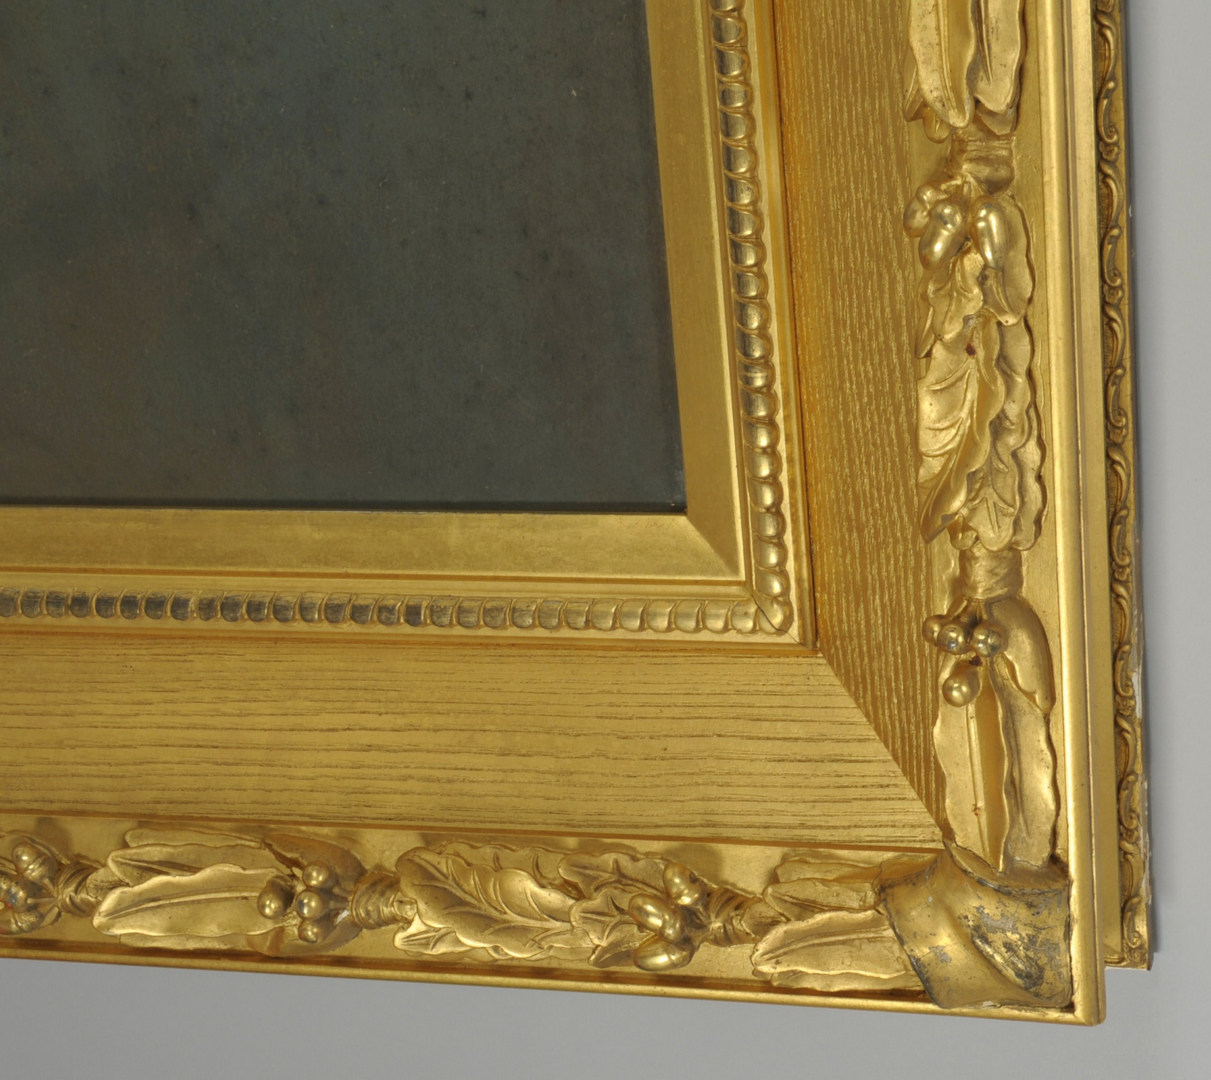 Lot 635: Two Am. Neoclassical Gilt Wood Frames, 19th c